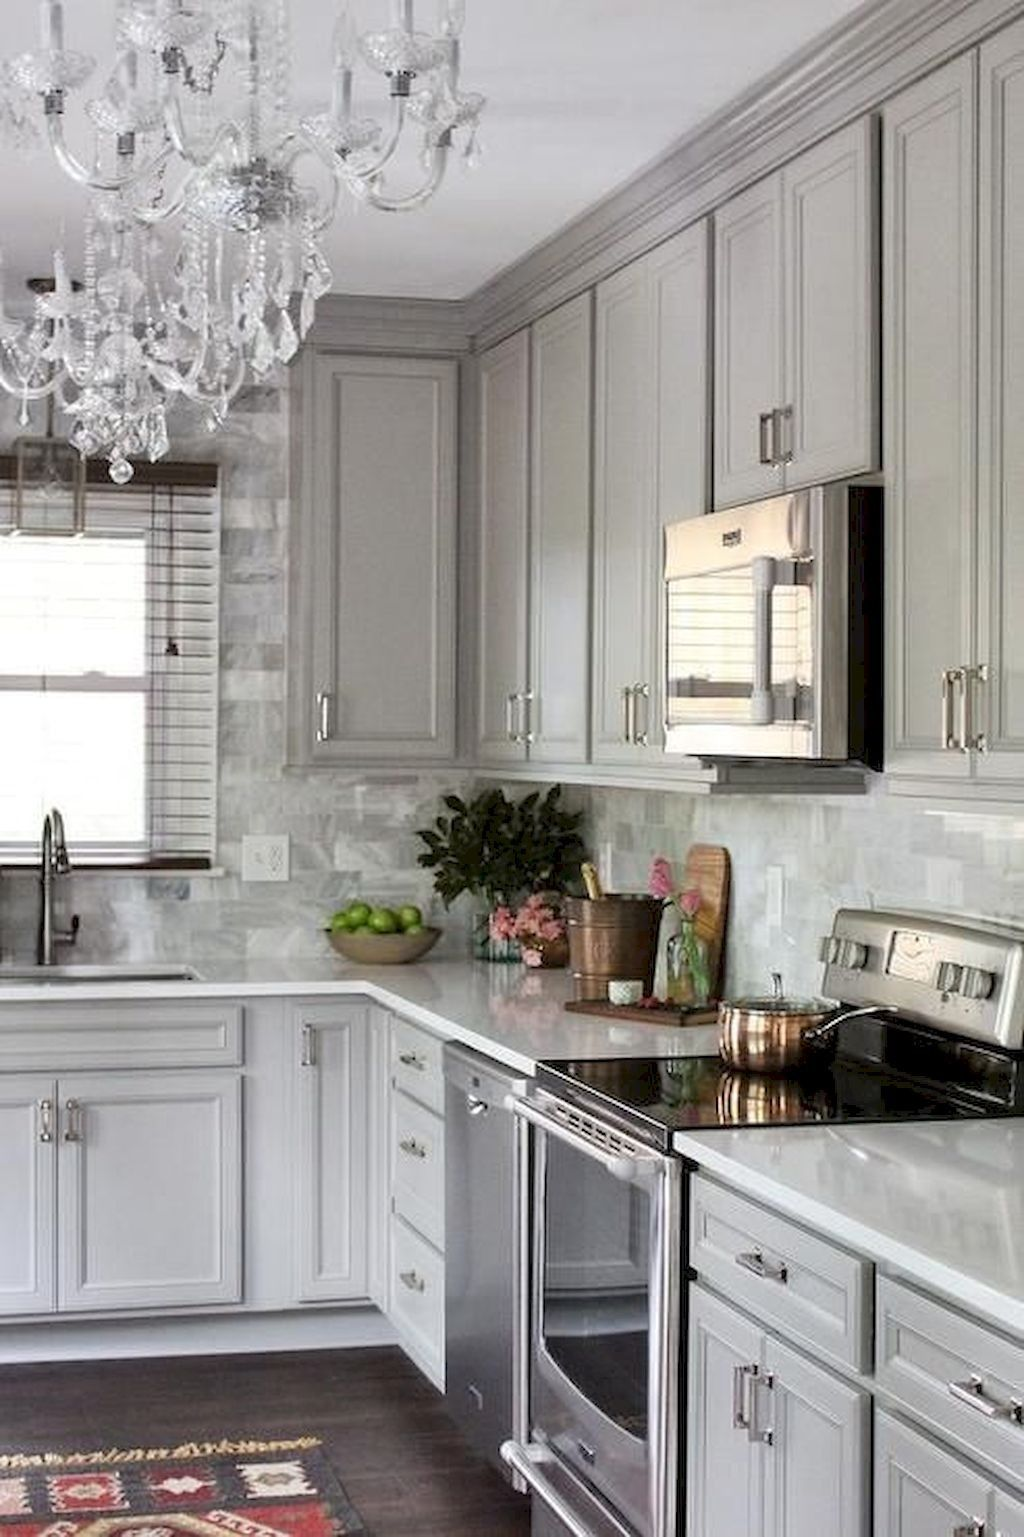 Best Heavenly Gray Kitchen Cabinet Design Ideas Kitchendesign 640 x 480